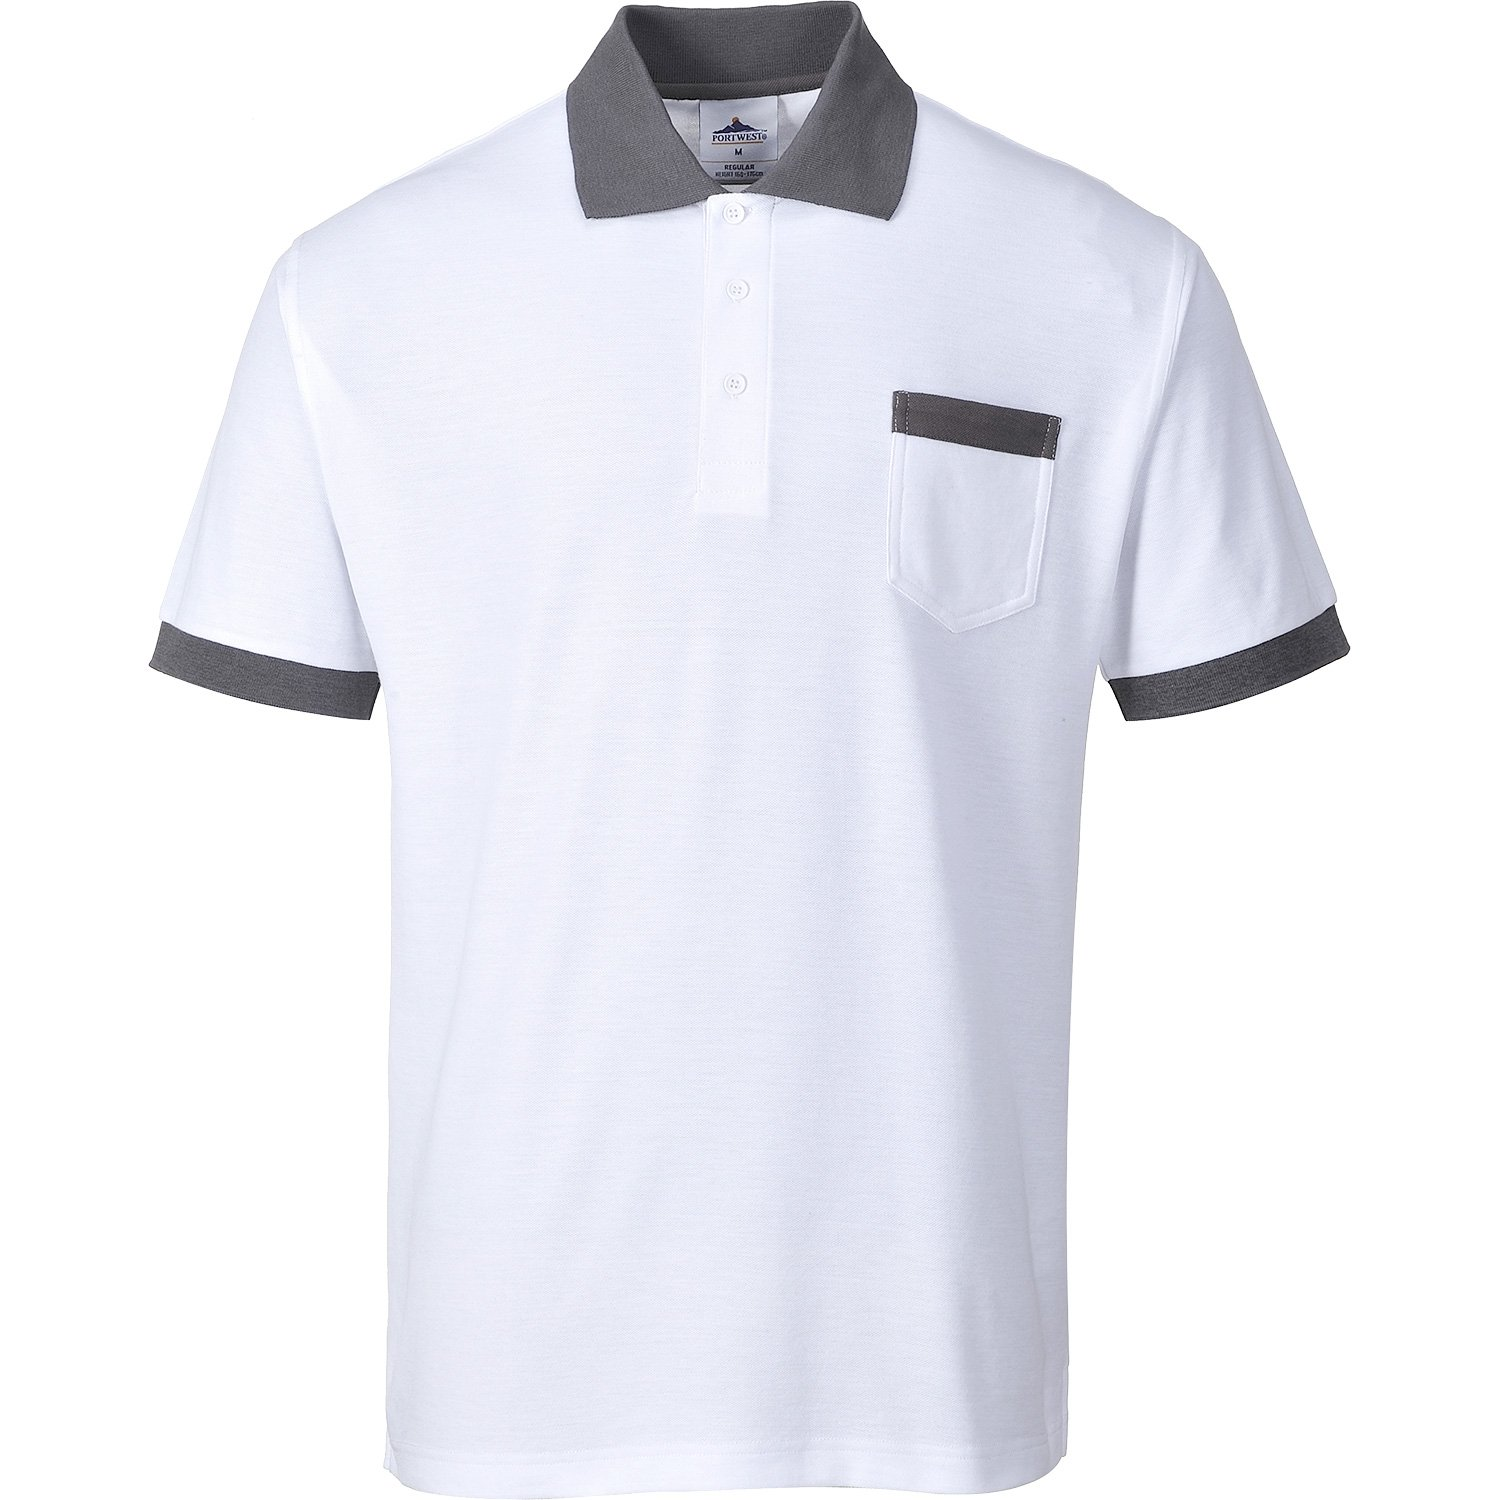 Portwest KS51 - Camisa del arte de Polo, color Blanco, talla Small ...